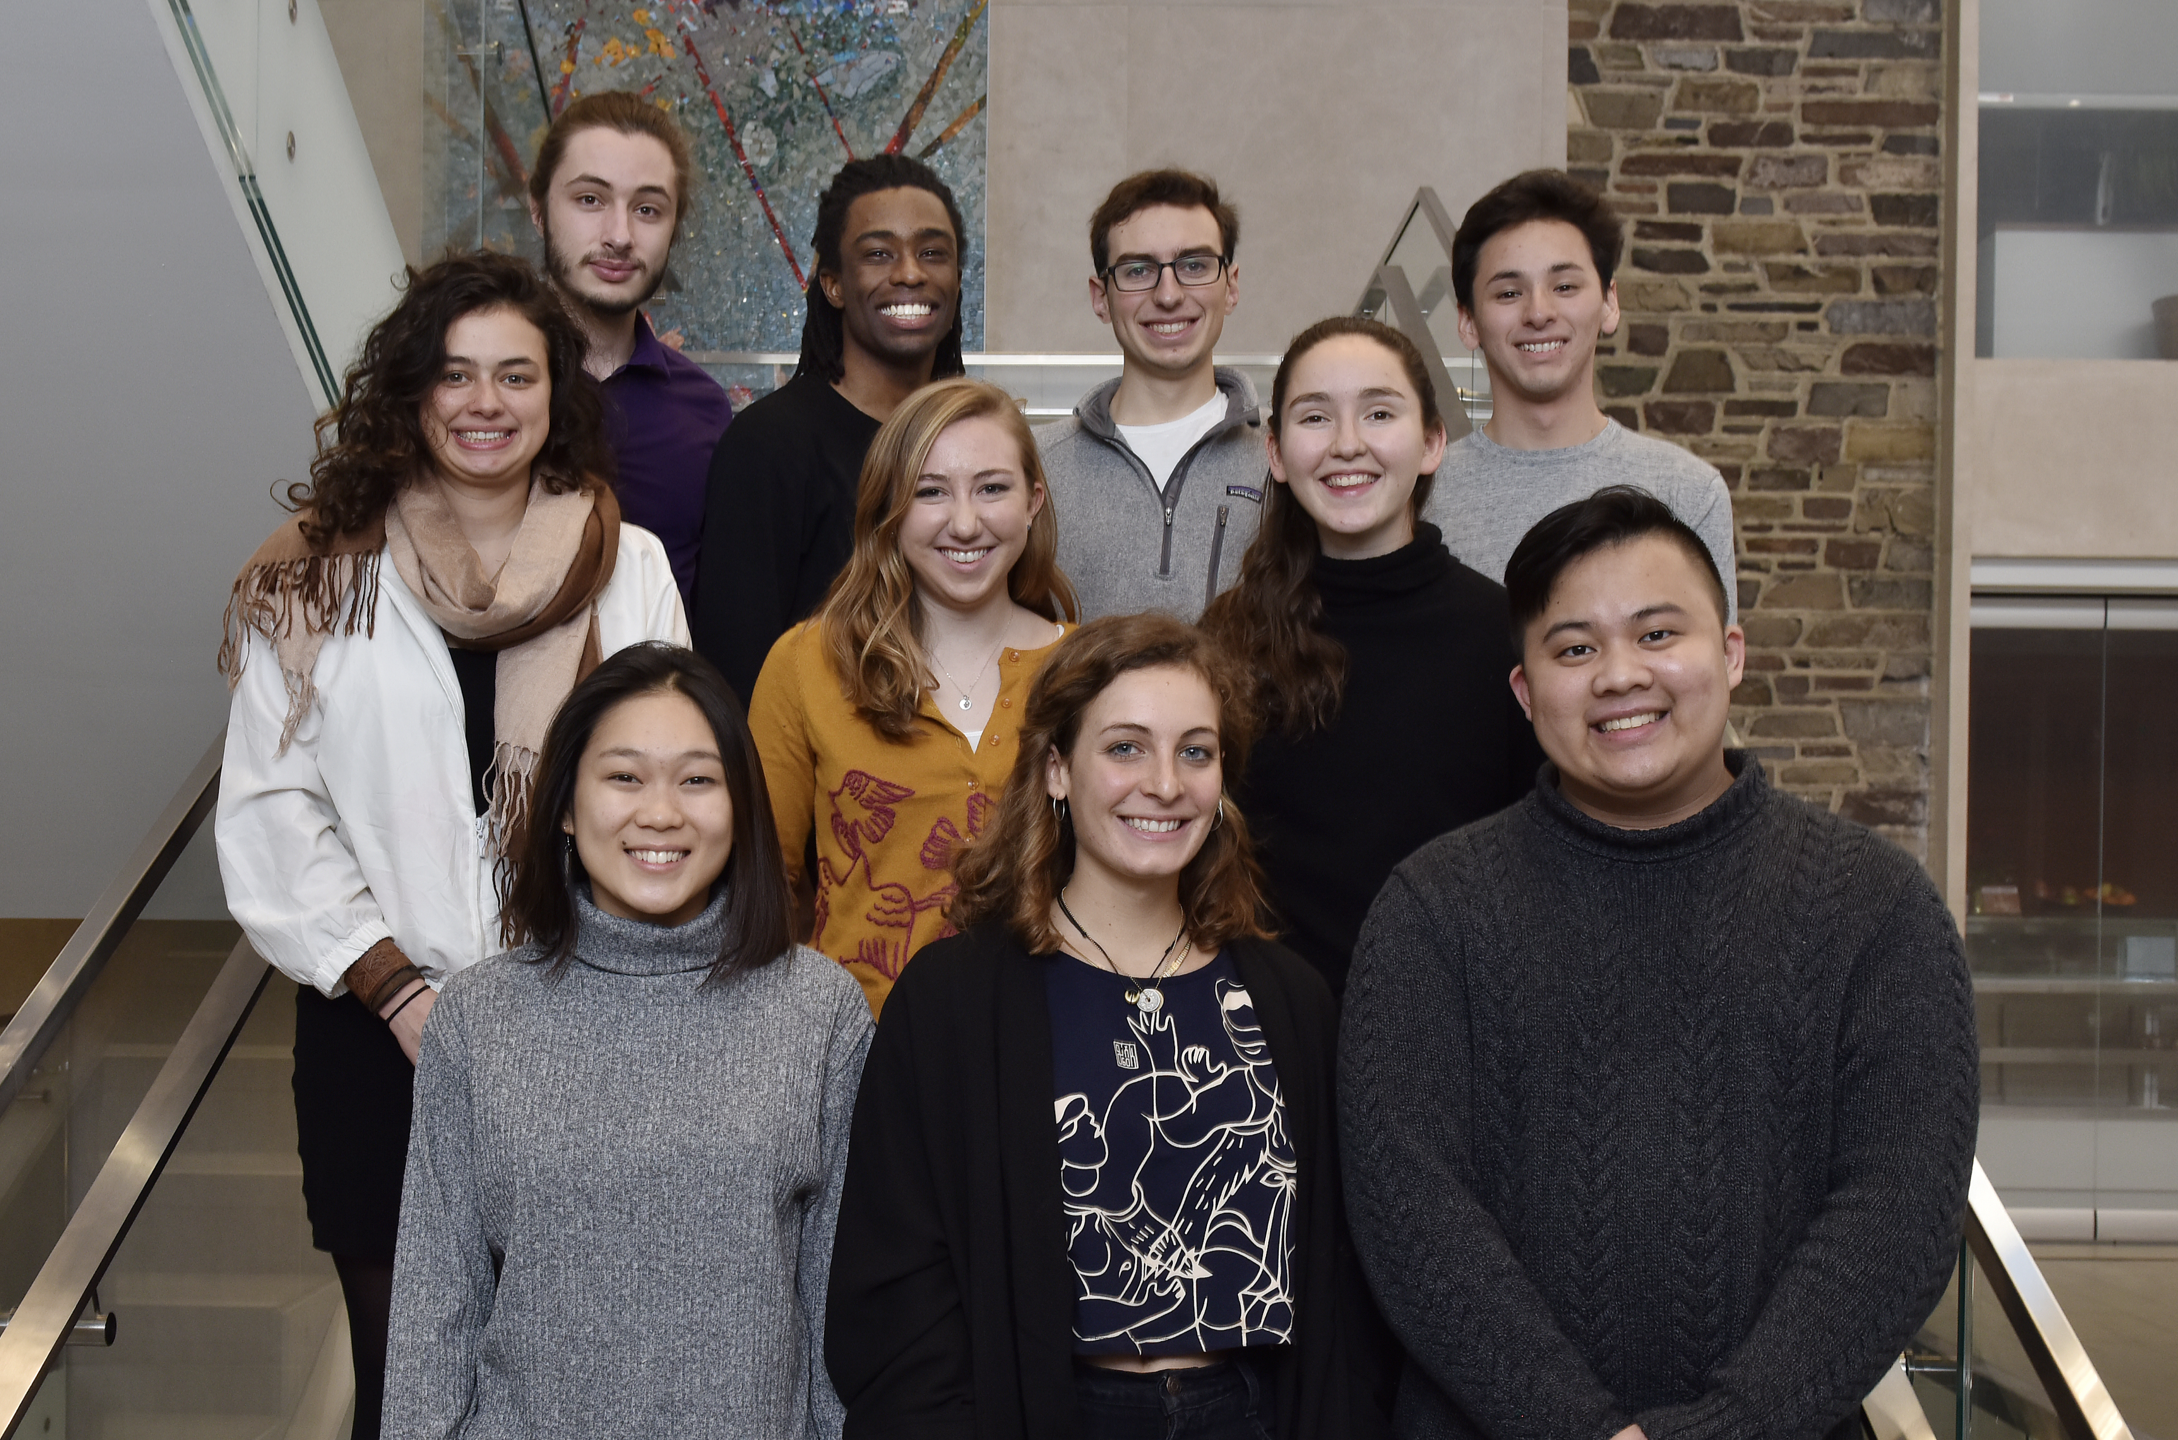 Nine outstanding juniors have been named the 2018 cohort of PIIRS Undergraduate Fellows. Photo by Mark Czajkowski